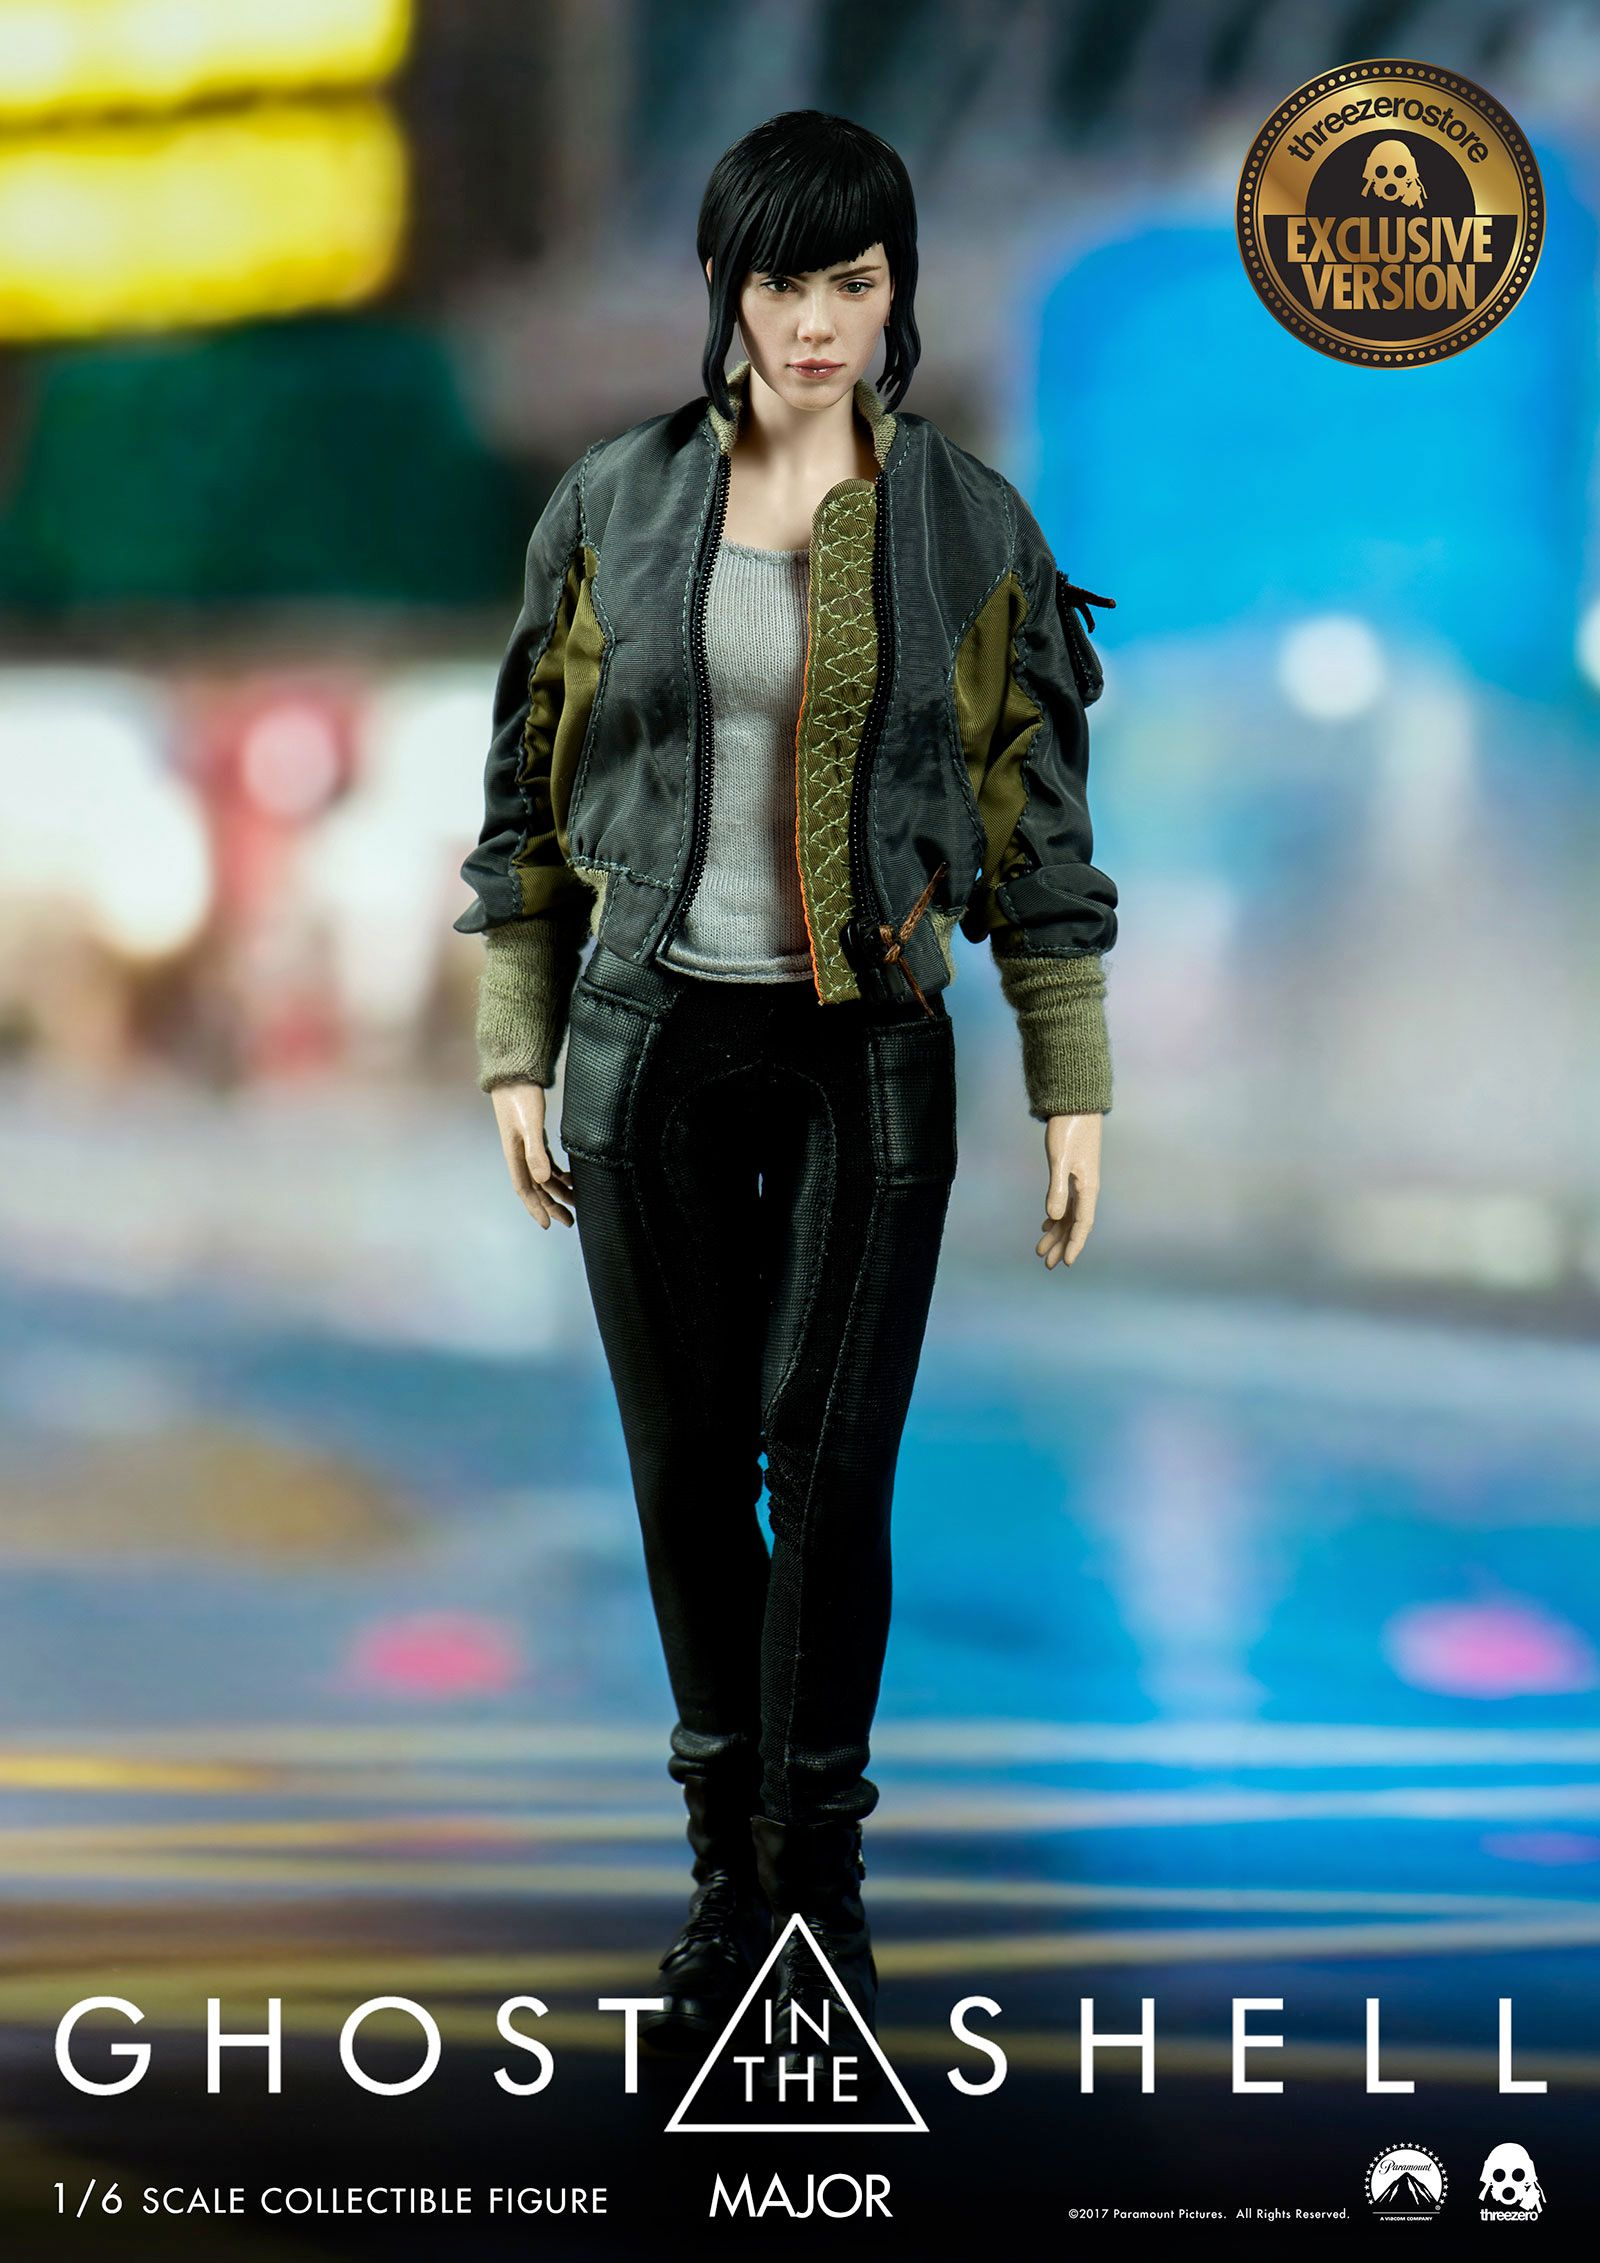 Ghost-In-The-Shell-MAJOR-Collectible-Action-Figure-10